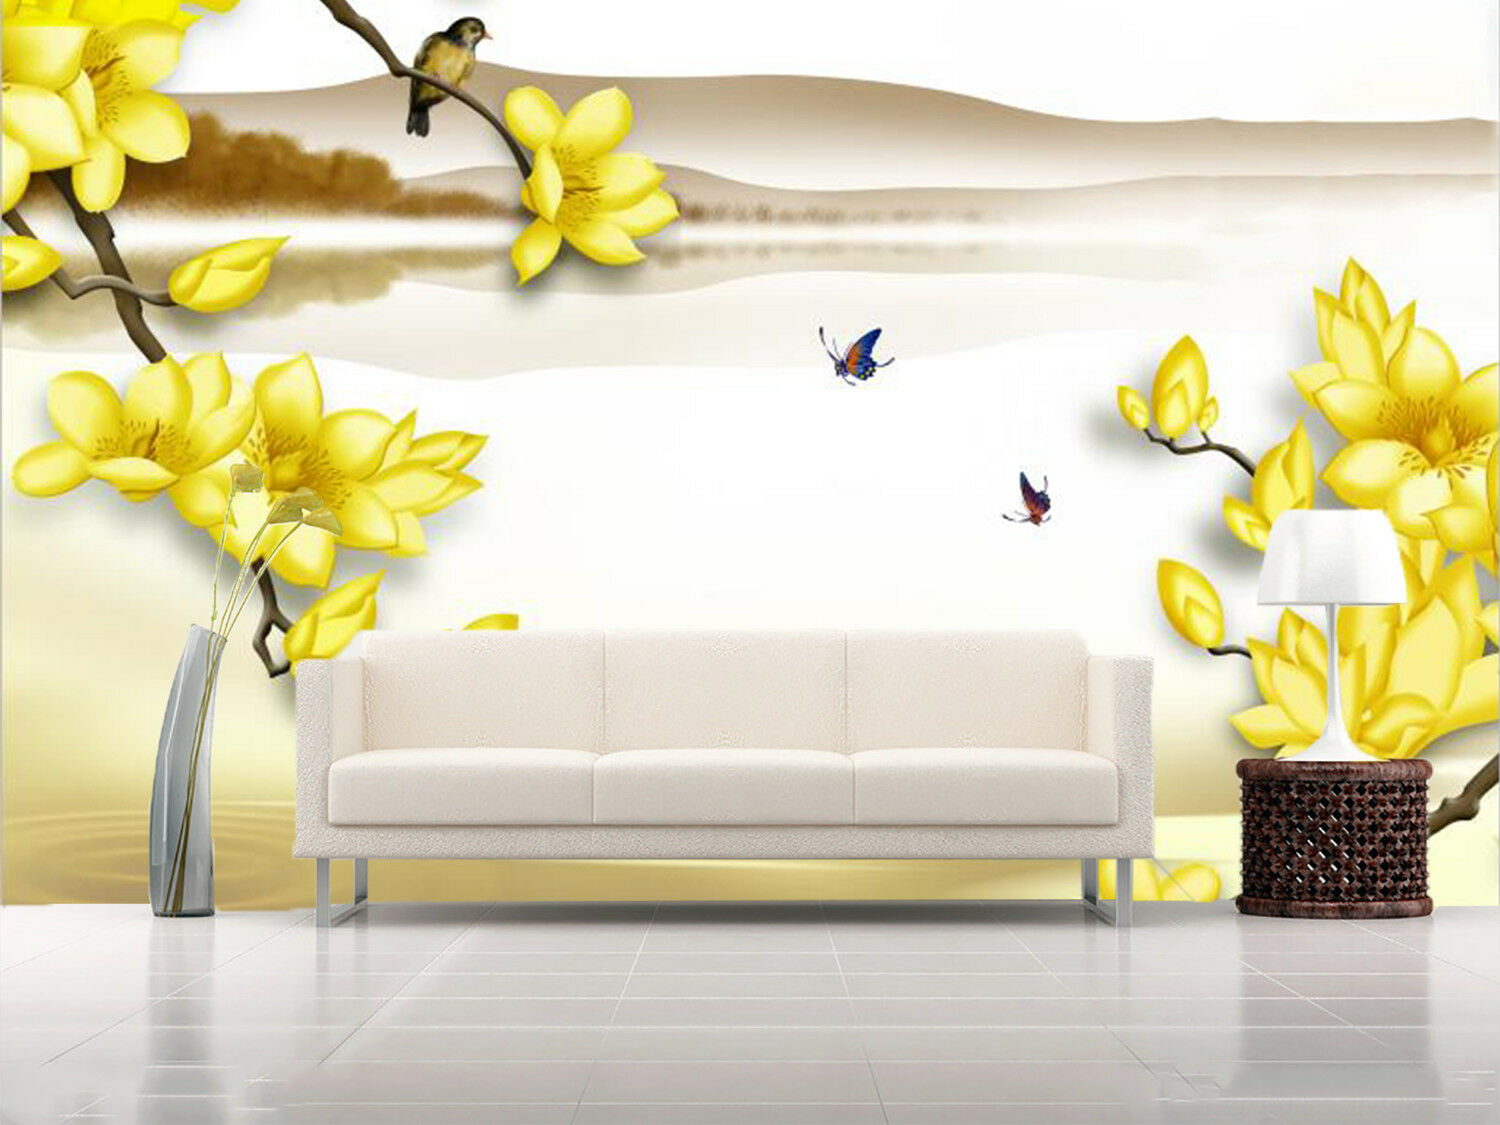 3D Gelb Flower 879 Wallpaper Mural Wall Print Wall Wallpaper Murals US Carly